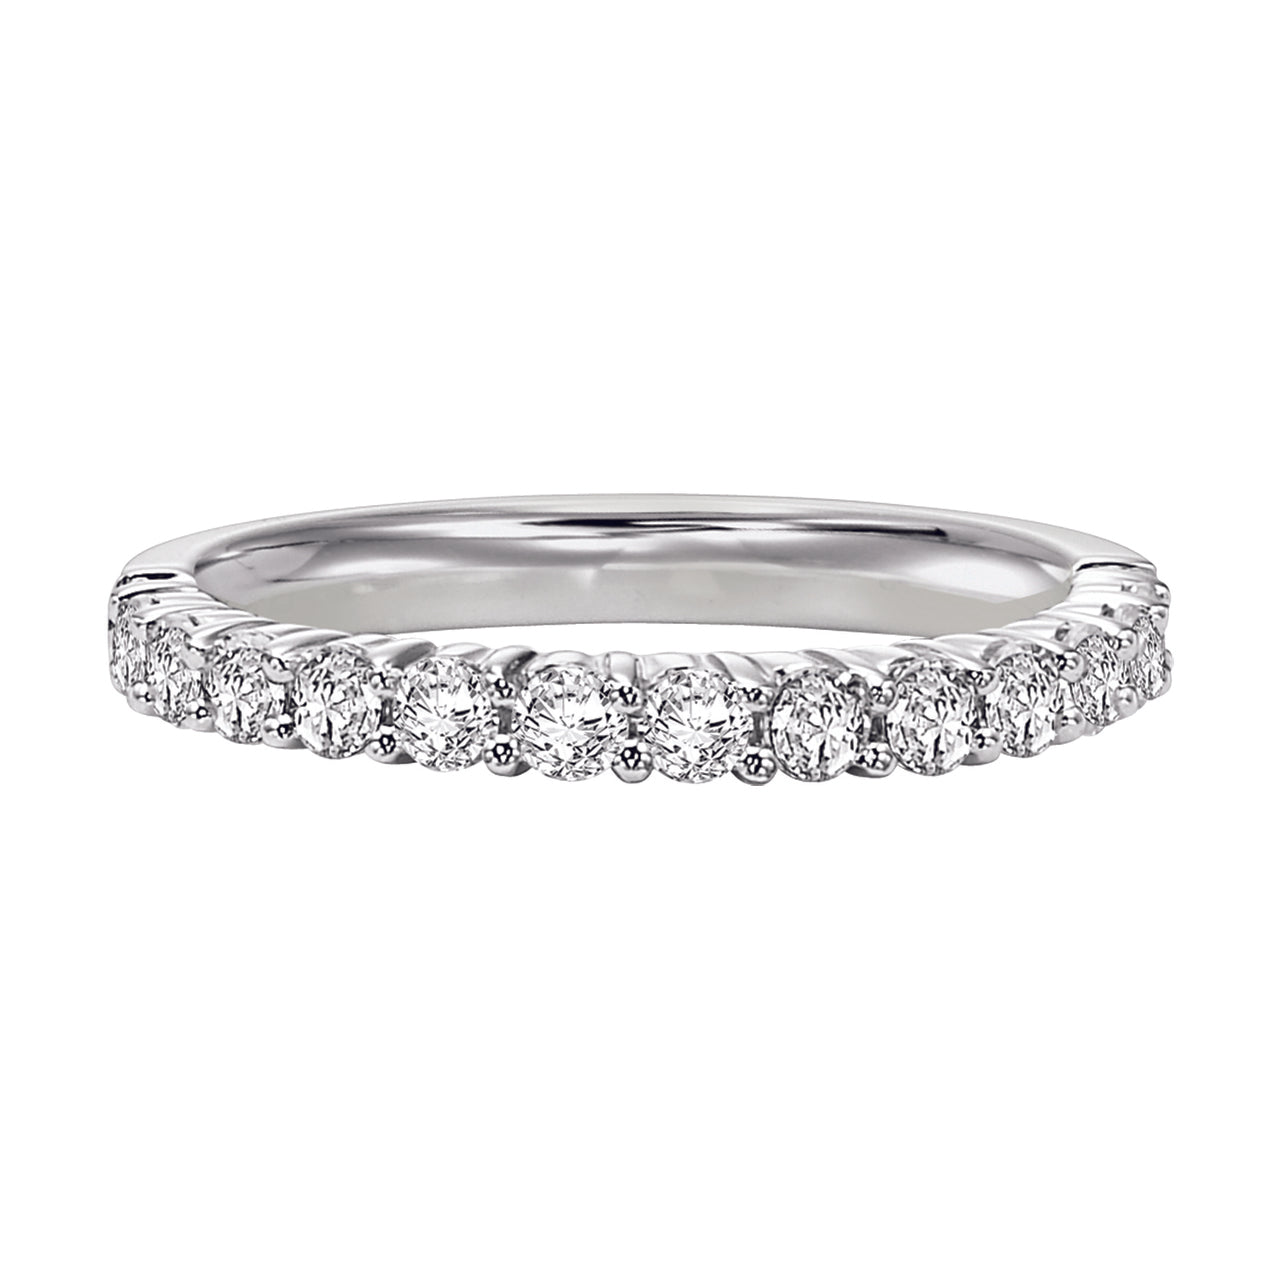 Fink's 14k White Gold 13 Stone Shared Prong Wedding Band €� Jewelers: Shared Prong Pave Wedding Band At Reisefeber.org